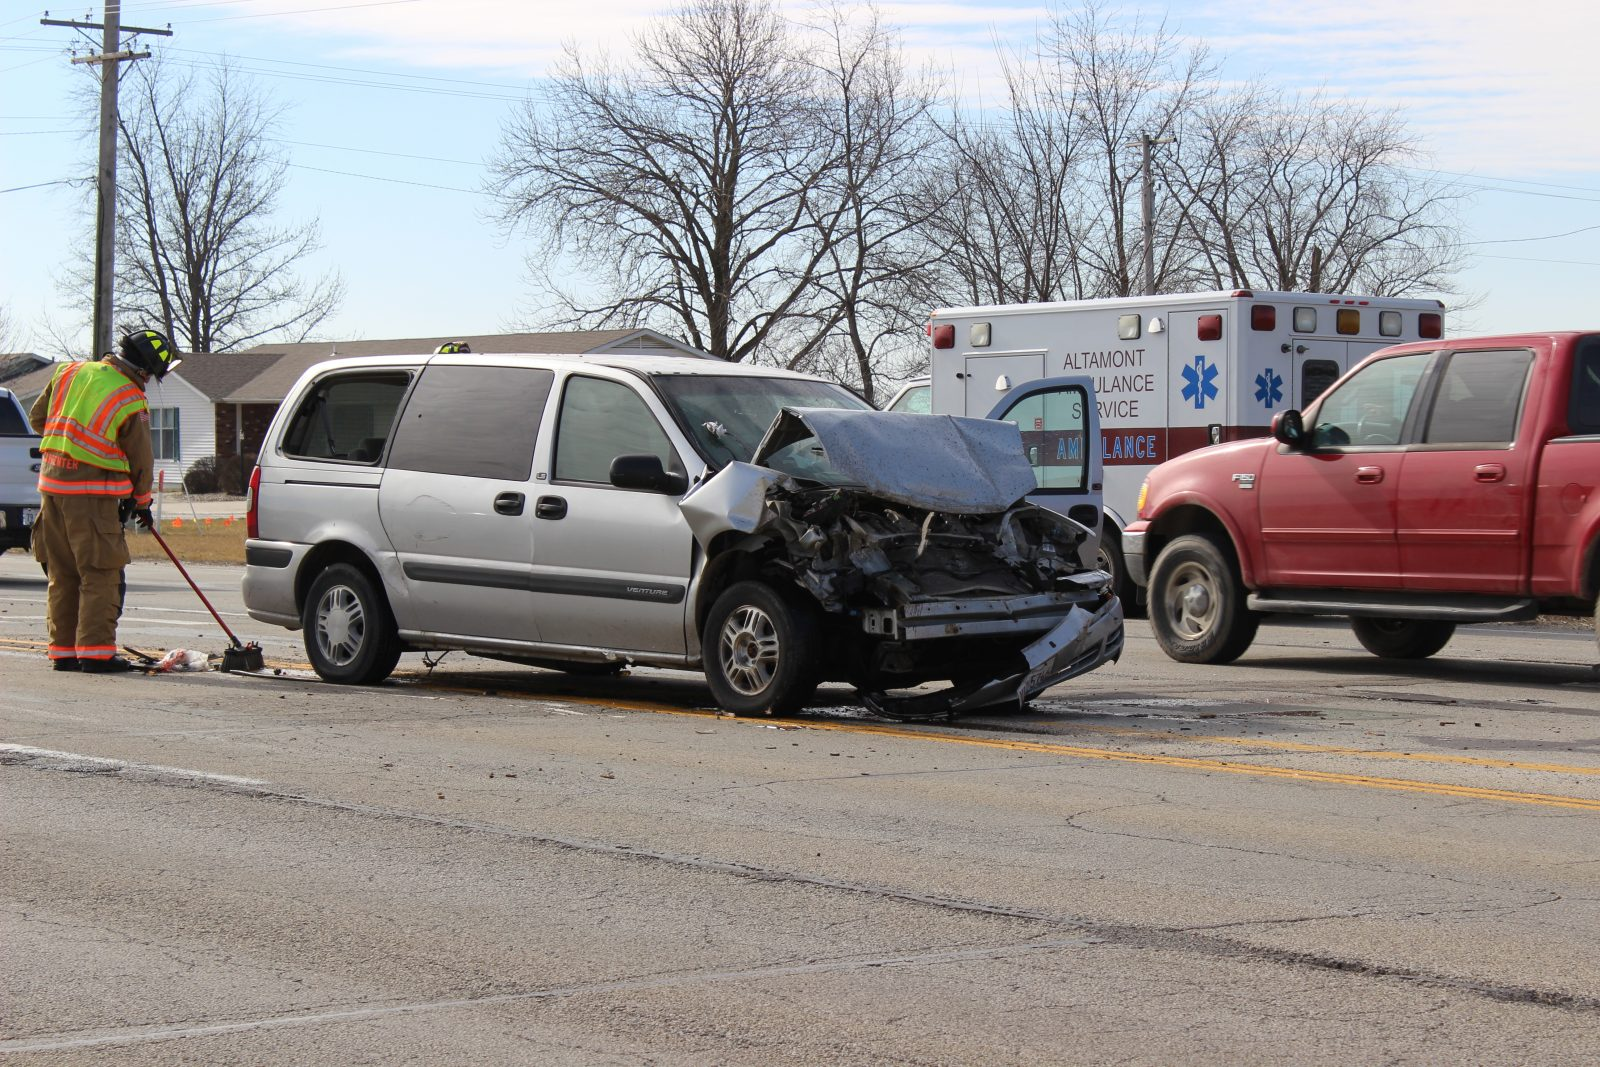 A Chevrolet Venture involved in an accident on Banker Street on Friday.